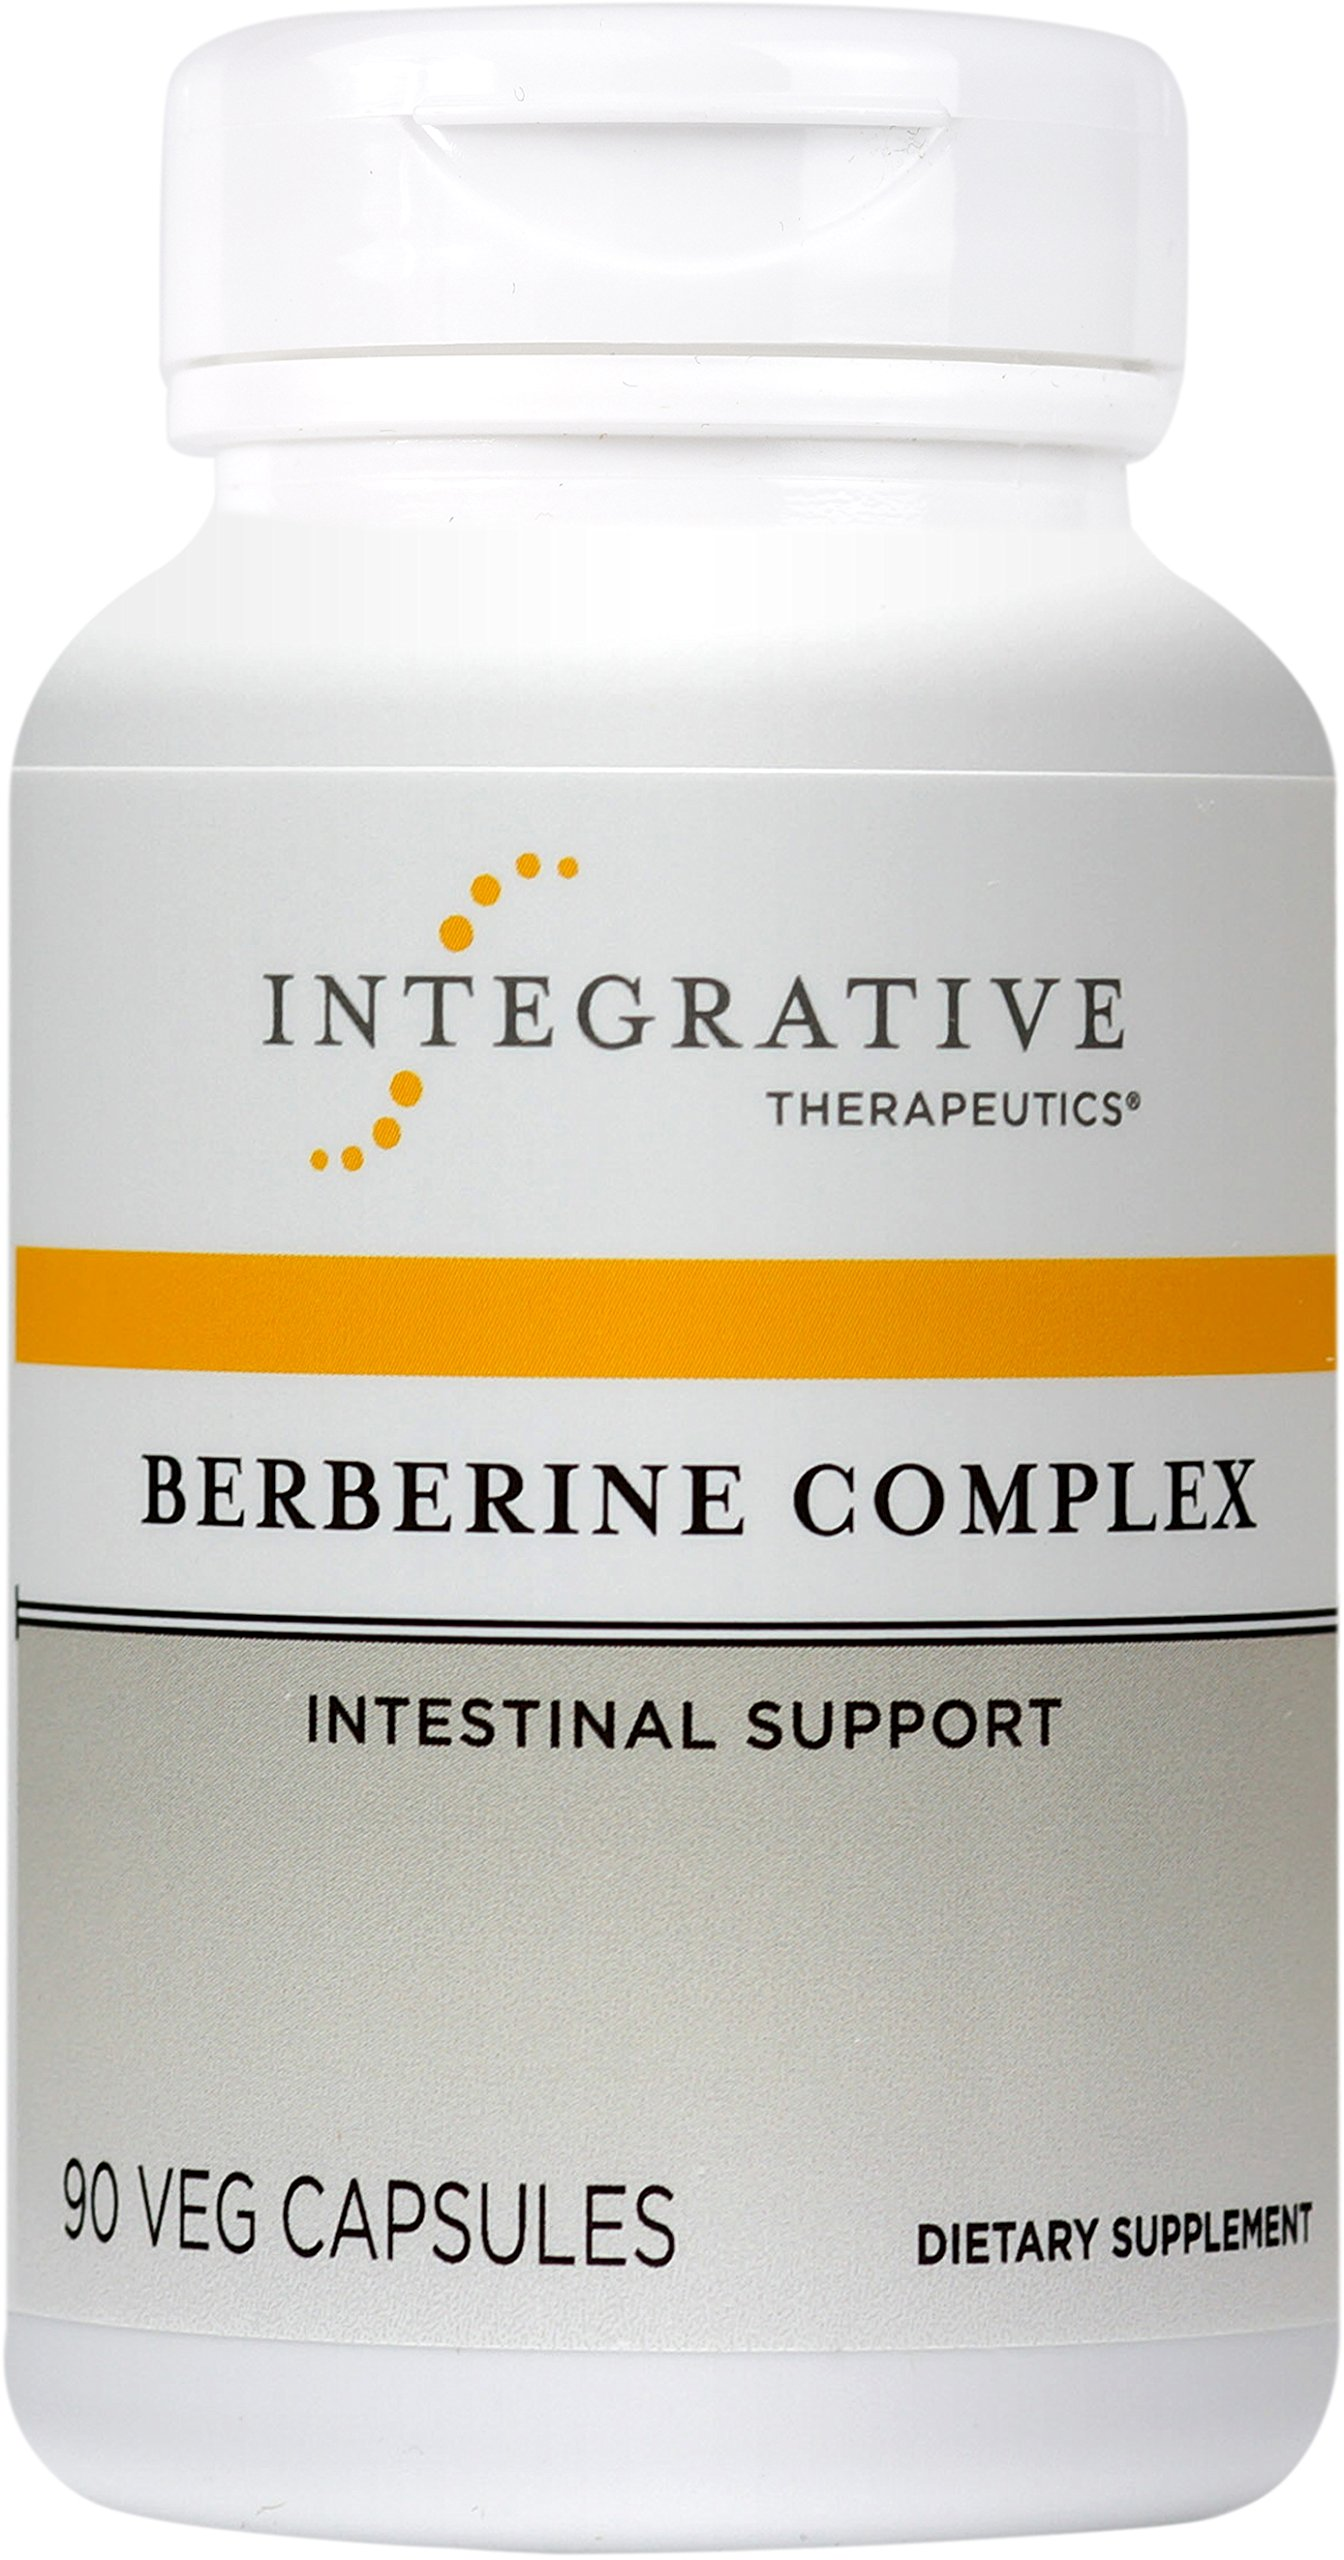 Integrative Therapeutics - Berberine Complex - Berberine Supplement with Oregon Grape an Goldenseal Root Extract - Vegan Supplement - 90 Capsules